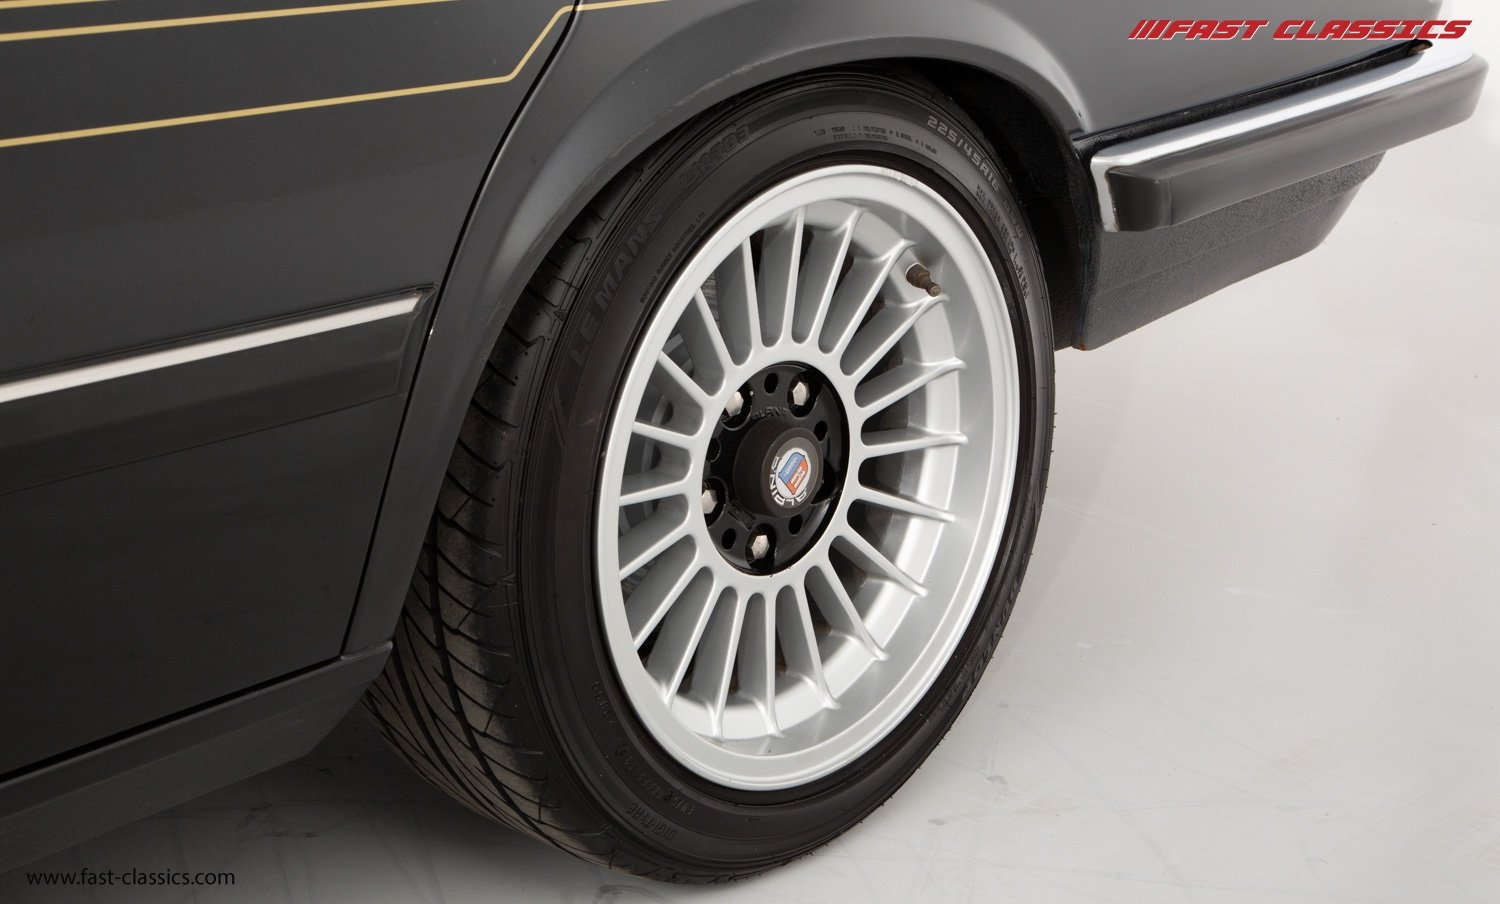 1986 ALPINA B7 TURBO/1 // 1 OF 42 HIGH POWER CATALYST CARS  For Sale (picture 22 of 24)